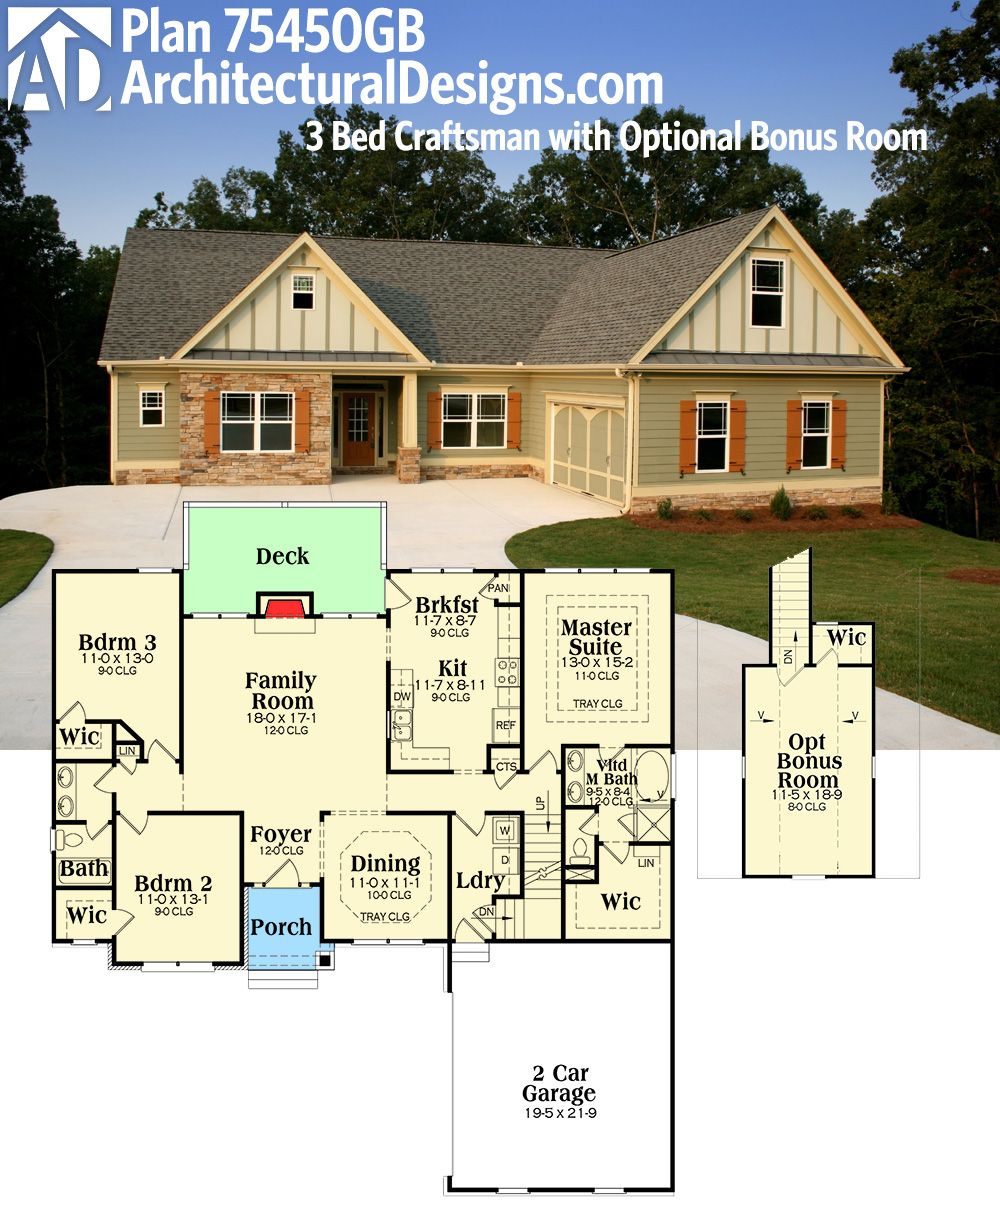 Plan 75450gb 3 Bed Craftsman With Optional Bonus Room Architectural Design House Plans One Level House Plans Craftsman House Plans